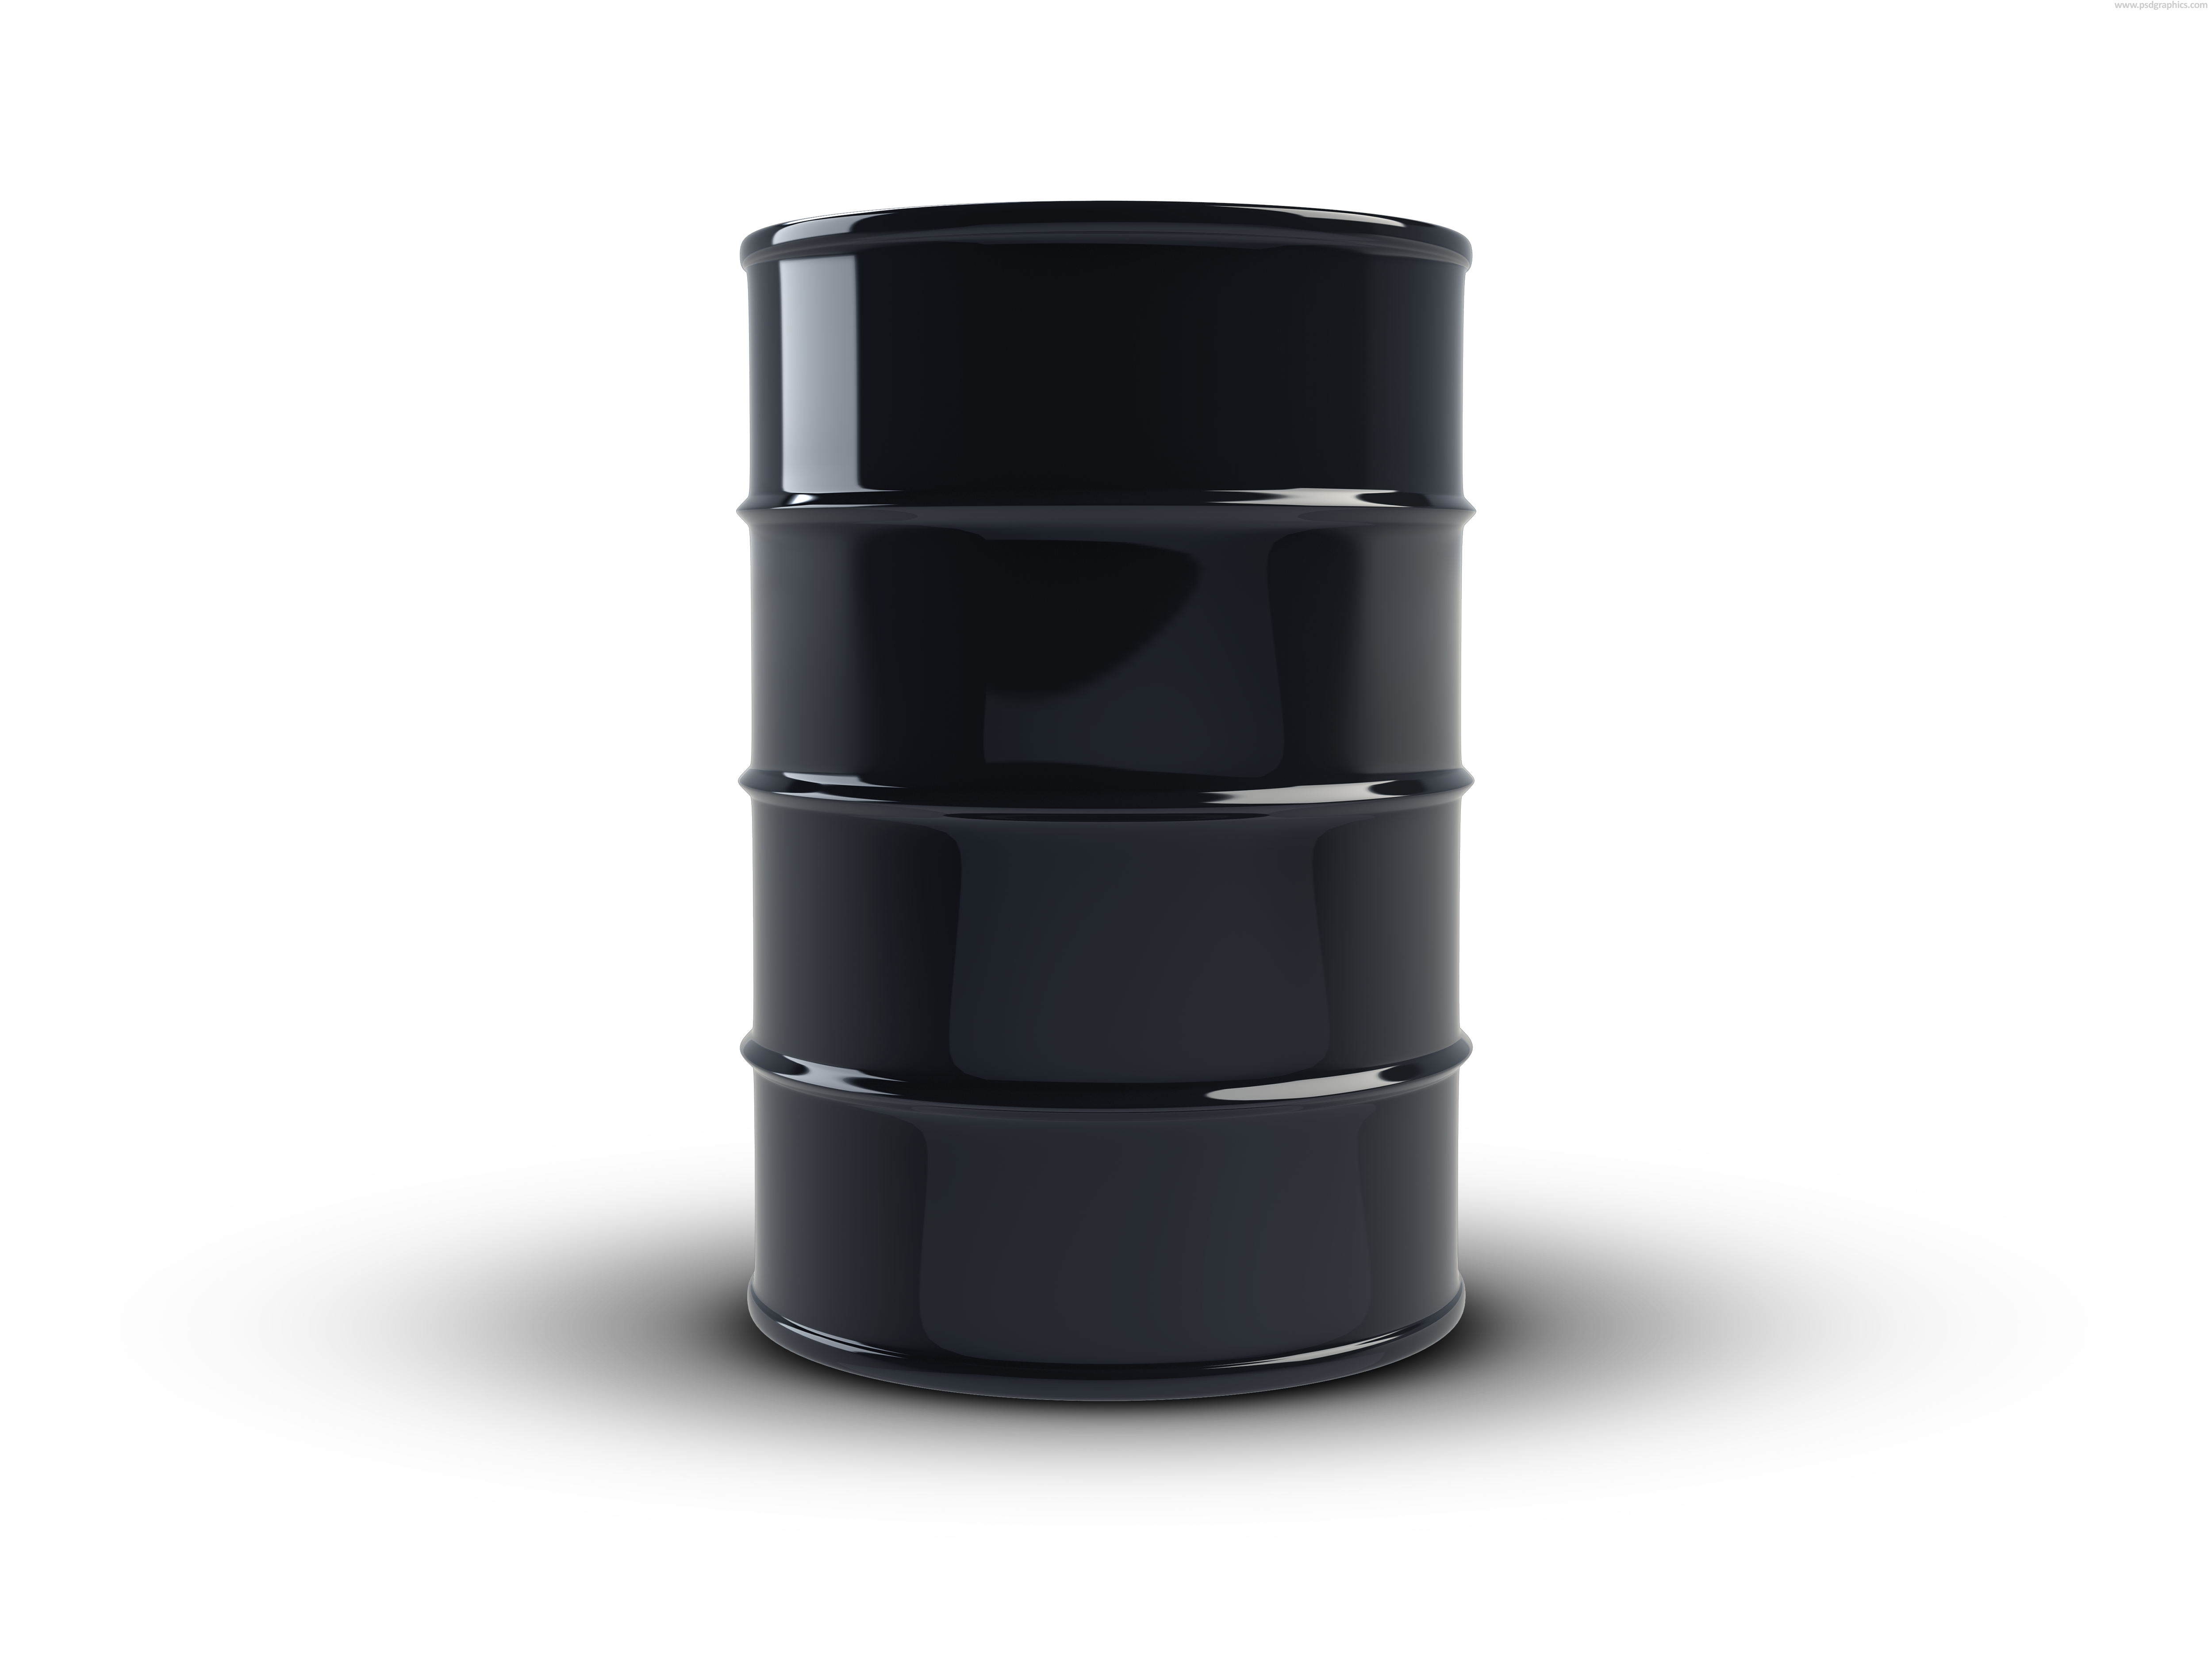 Black Oil Barrel And Barrels Png